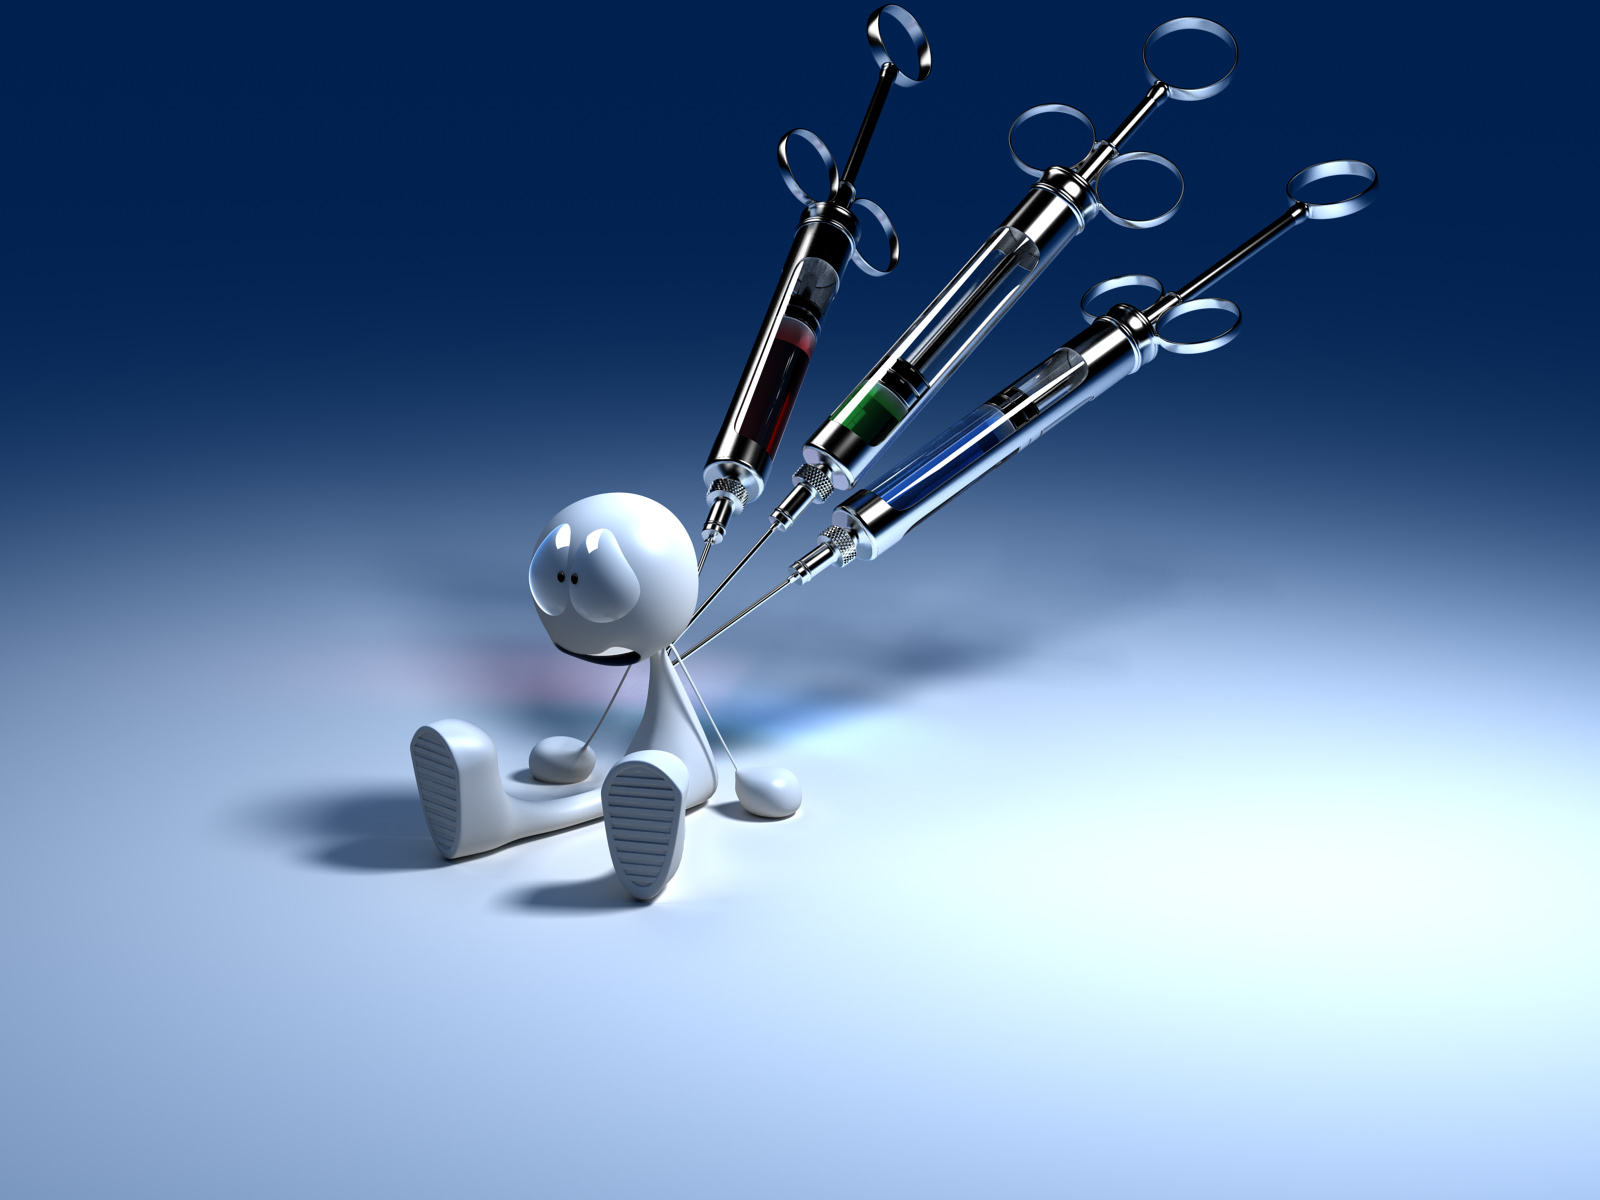 3D man with a syringe in his back, medical wallpaper - a theme medicine syringe